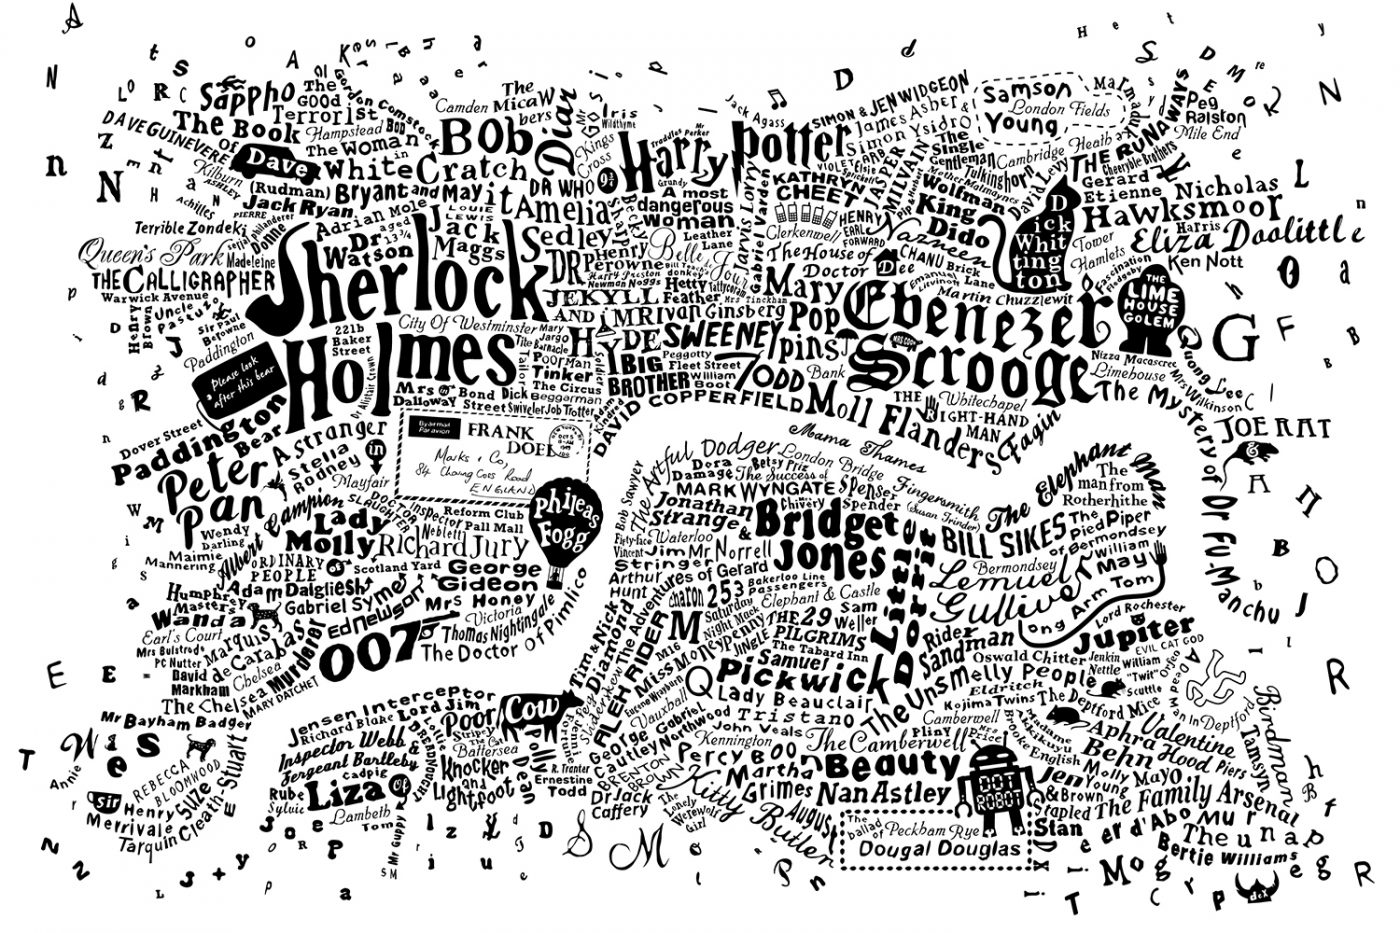 Map Of Central London To Print.Literary Central London Map Run For The Hills